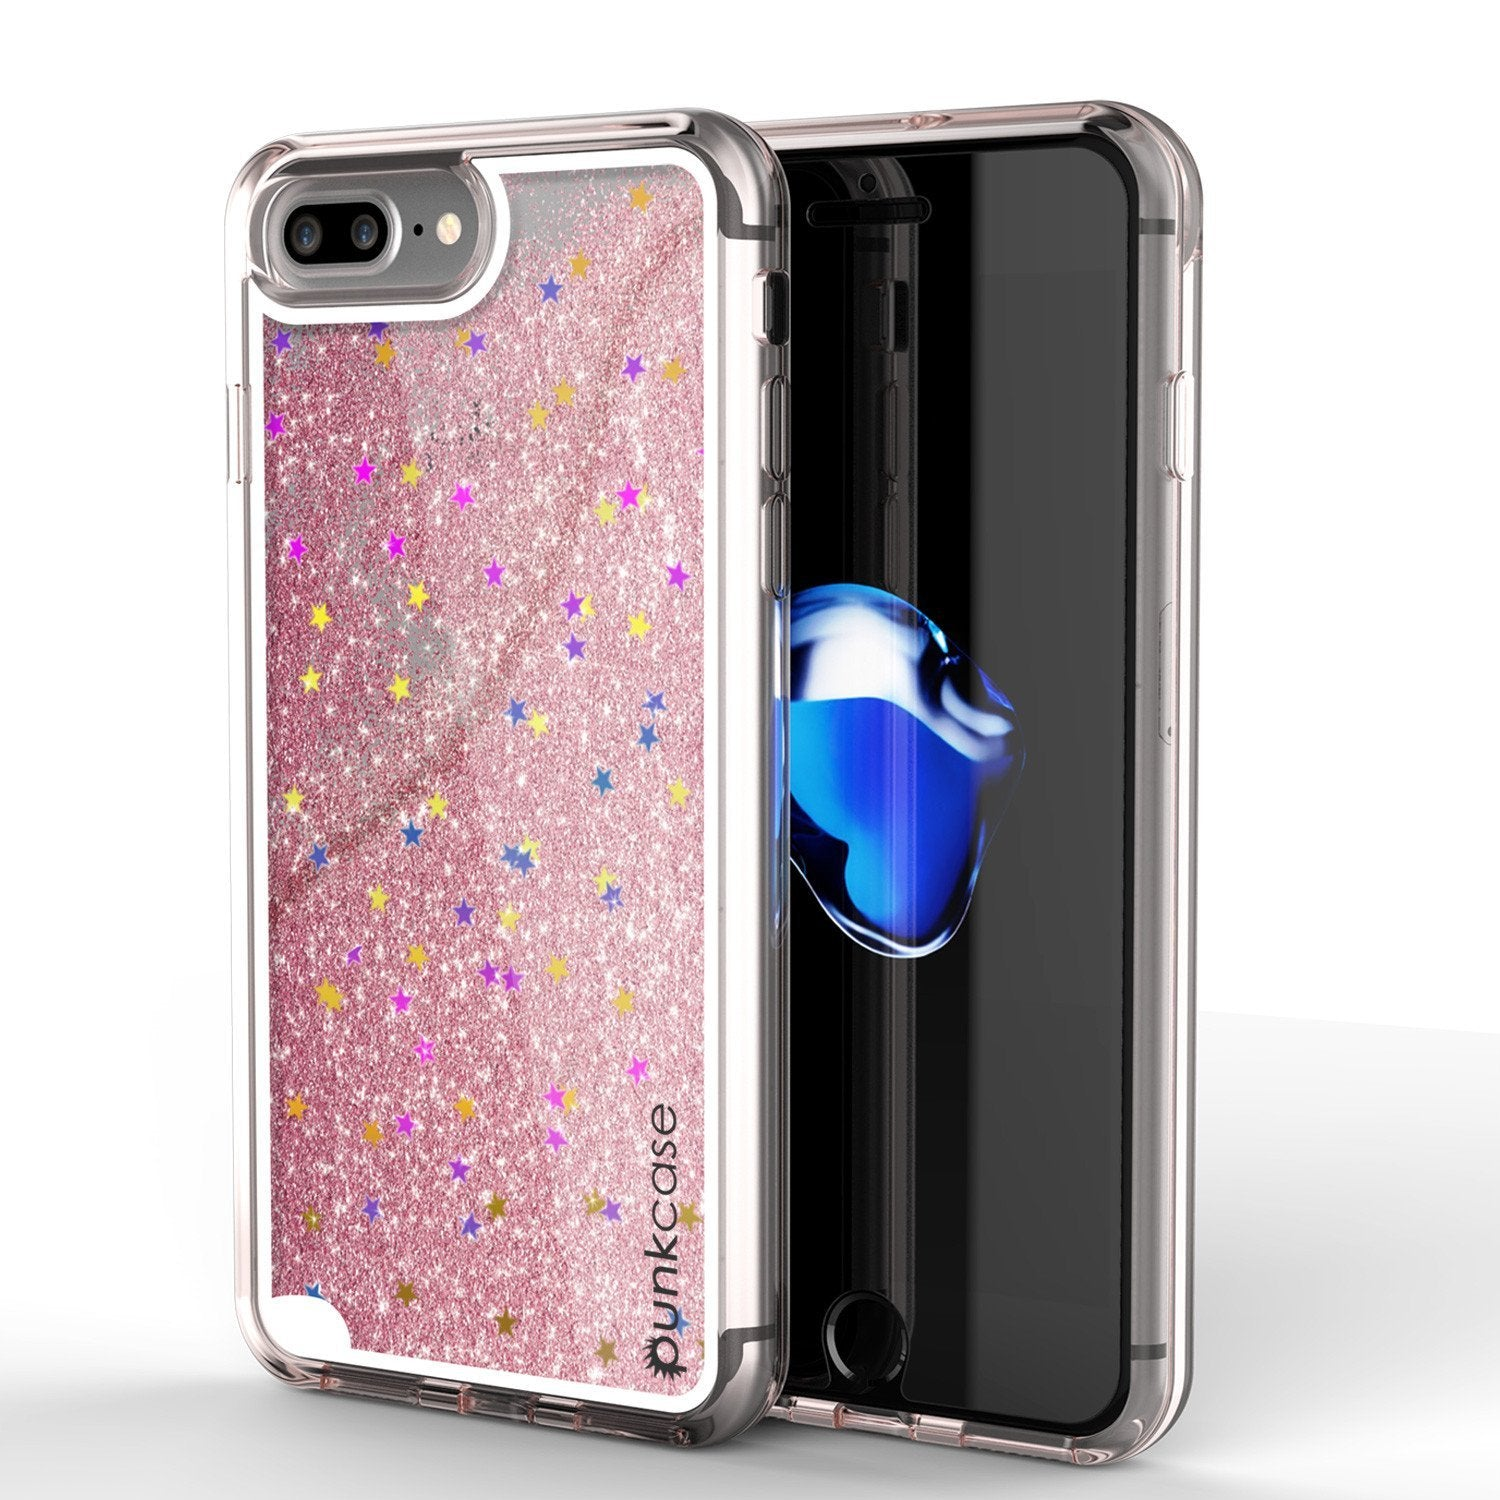 iPhone 8+ Plus Case PunkCase Liquid Rose, Floating Glitter Cover Series